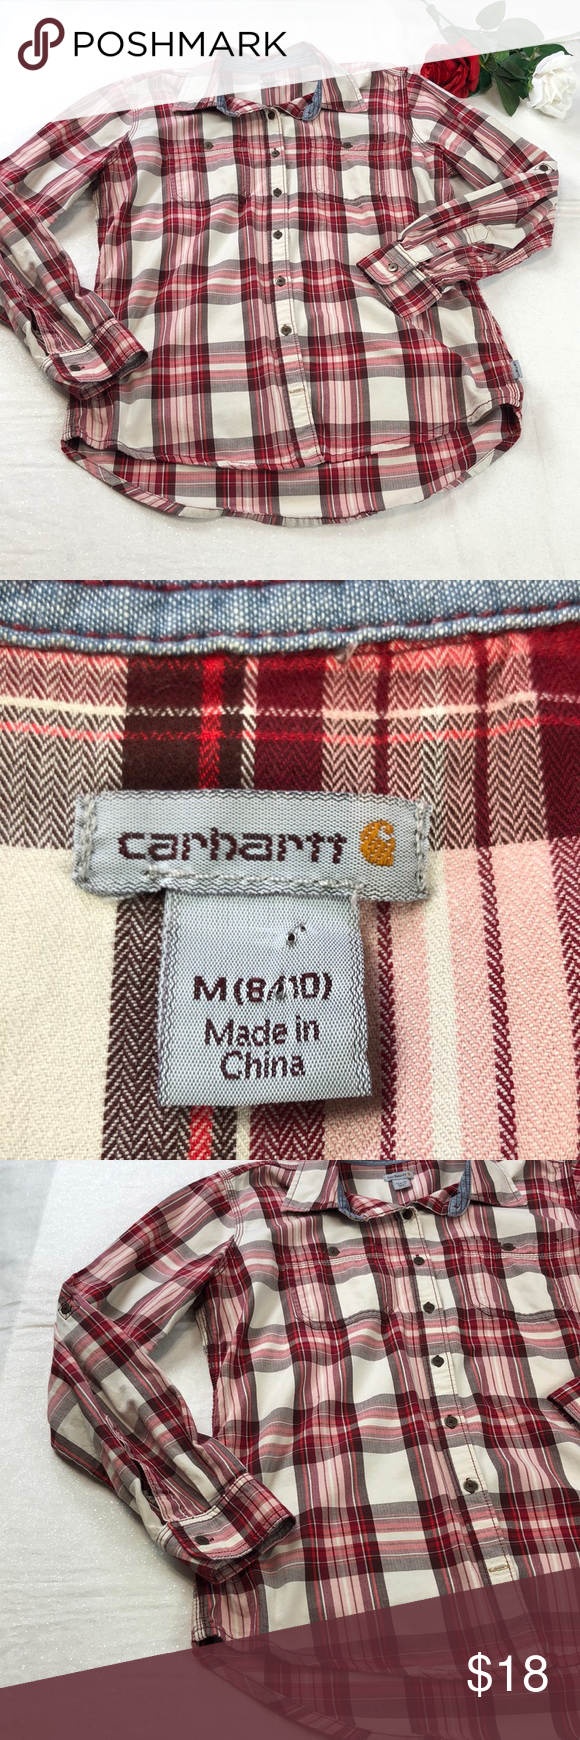 Carhartt Women's M Plaid Tab Sleeve Shirt Excellent Condition and Super Cute, Tab Roll Sleeves, Size Medium (8/10), Plaid , Button Front Carhartt Tops Button Down Shirts #carharttwomen Carhartt Women's M Plaid Tab Sleeve Shirt Excellent Condition and Super Cute, Tab Roll Sleeves, Size Medium (8/10), Plaid , Button Front Carhartt Tops Button Down Shirts #carharttwomen